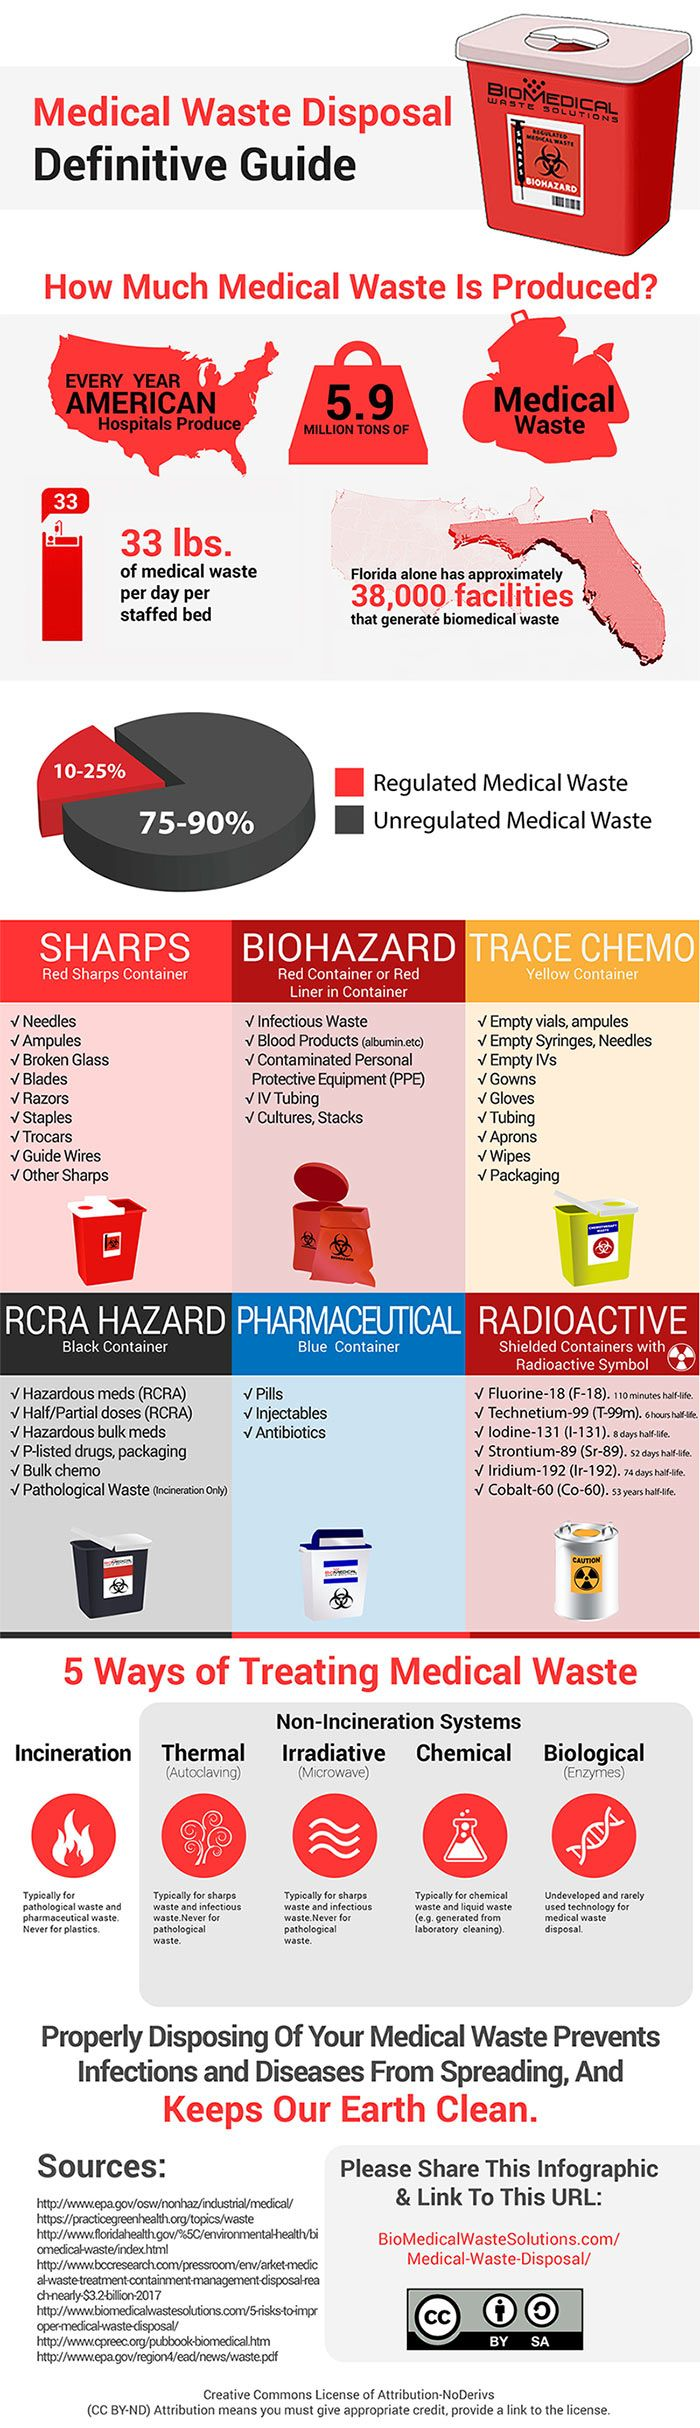 The definitive guide to medical waste disposal: Definition, regulations, methods, containers, risks, categories, etc. Free download and infographic.